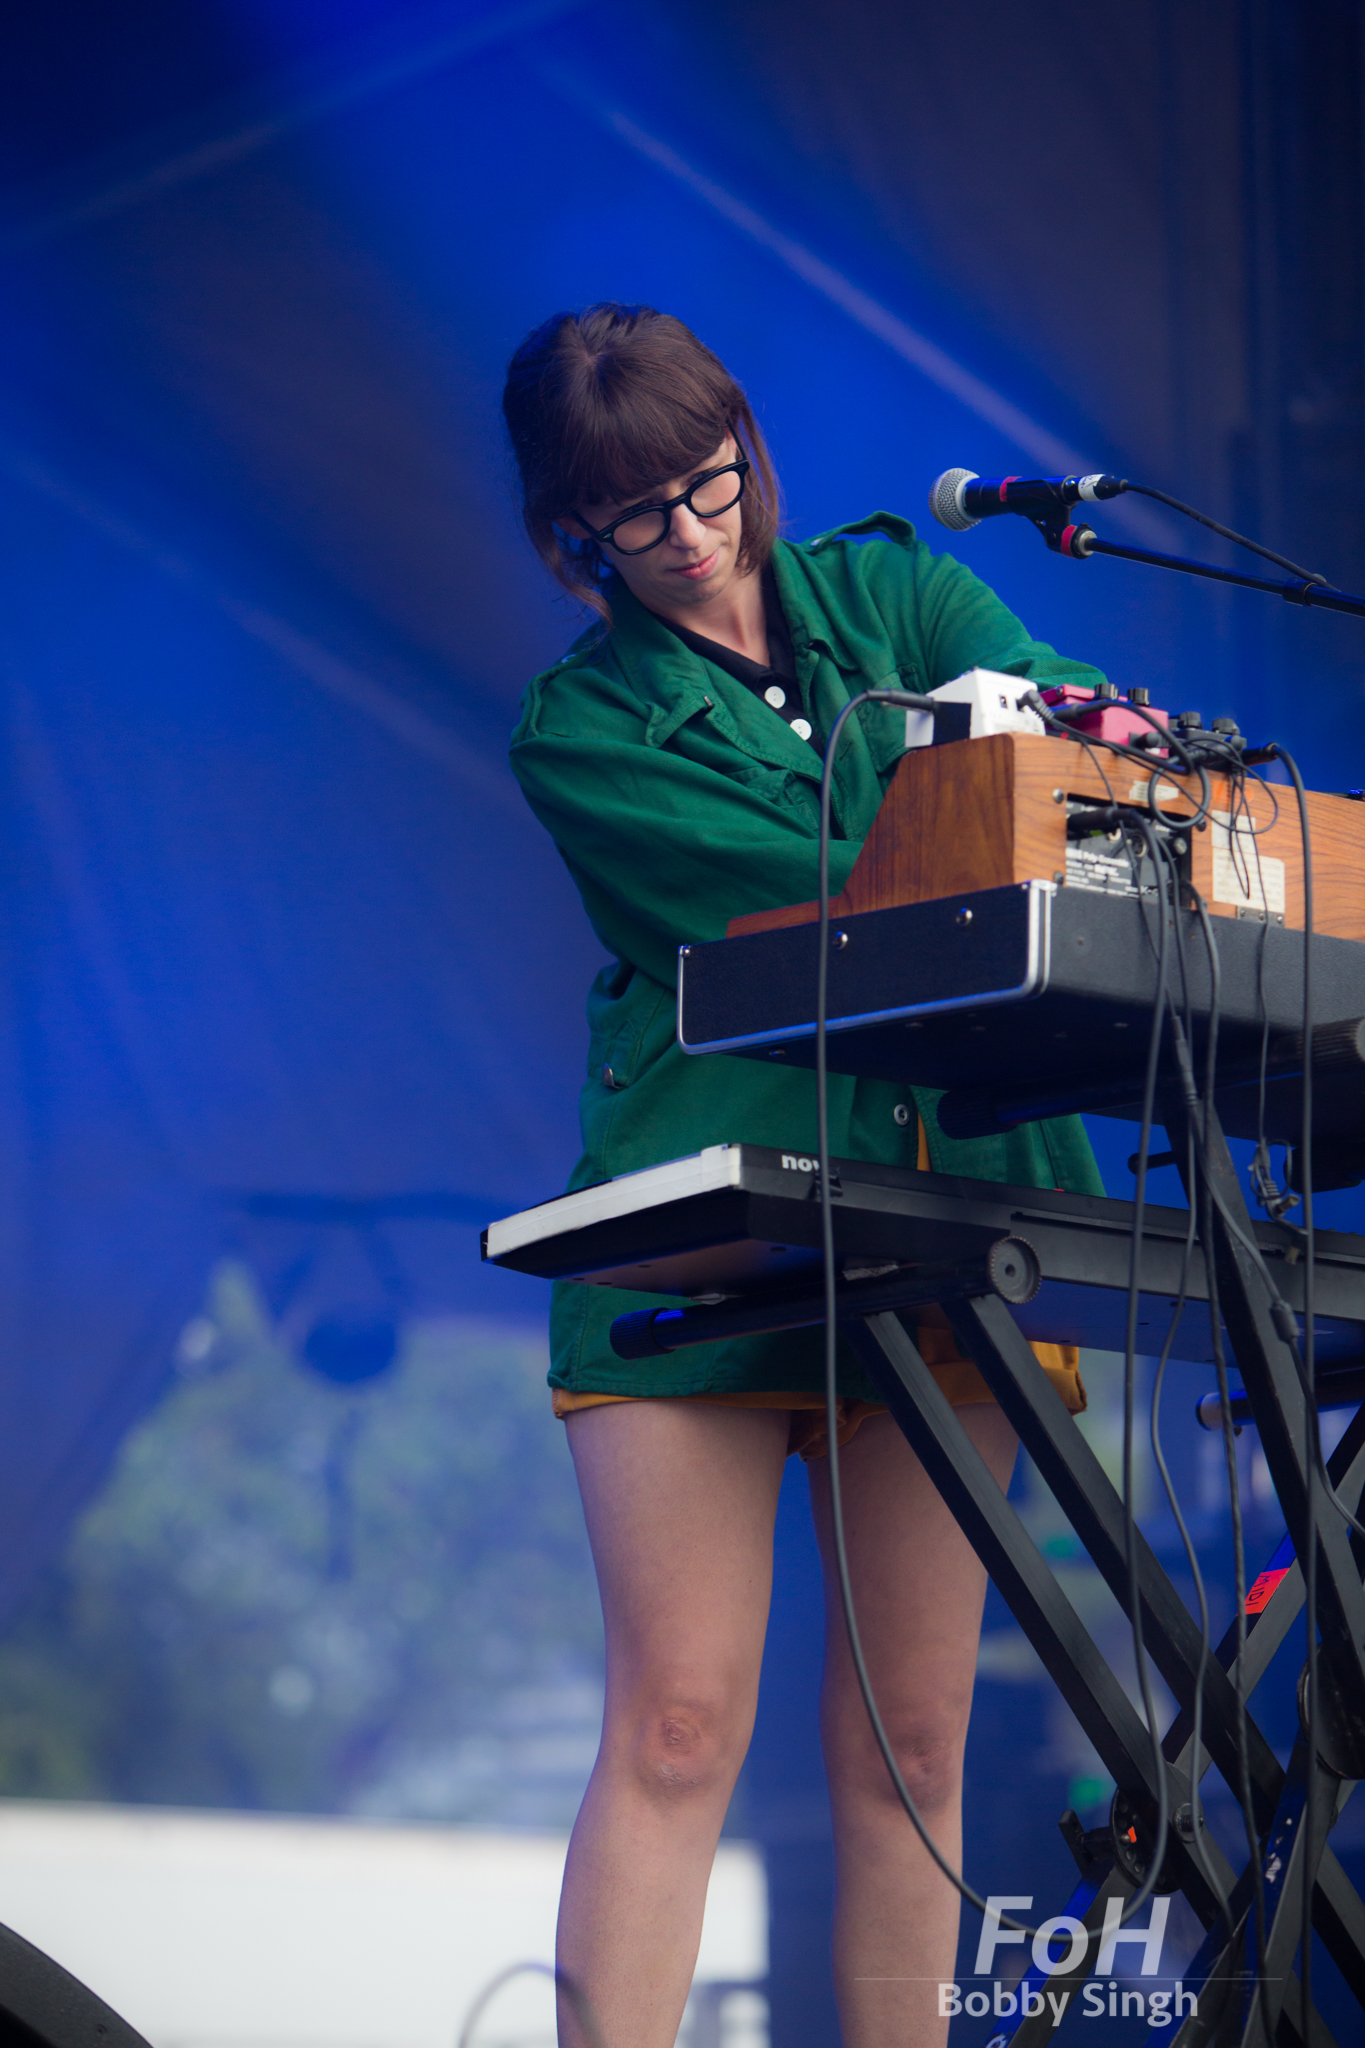 Keyboardist Kerri MacLellan of pop band Alvvays performing at the 2018 Field Trip Music & Arts Festival in Toronto